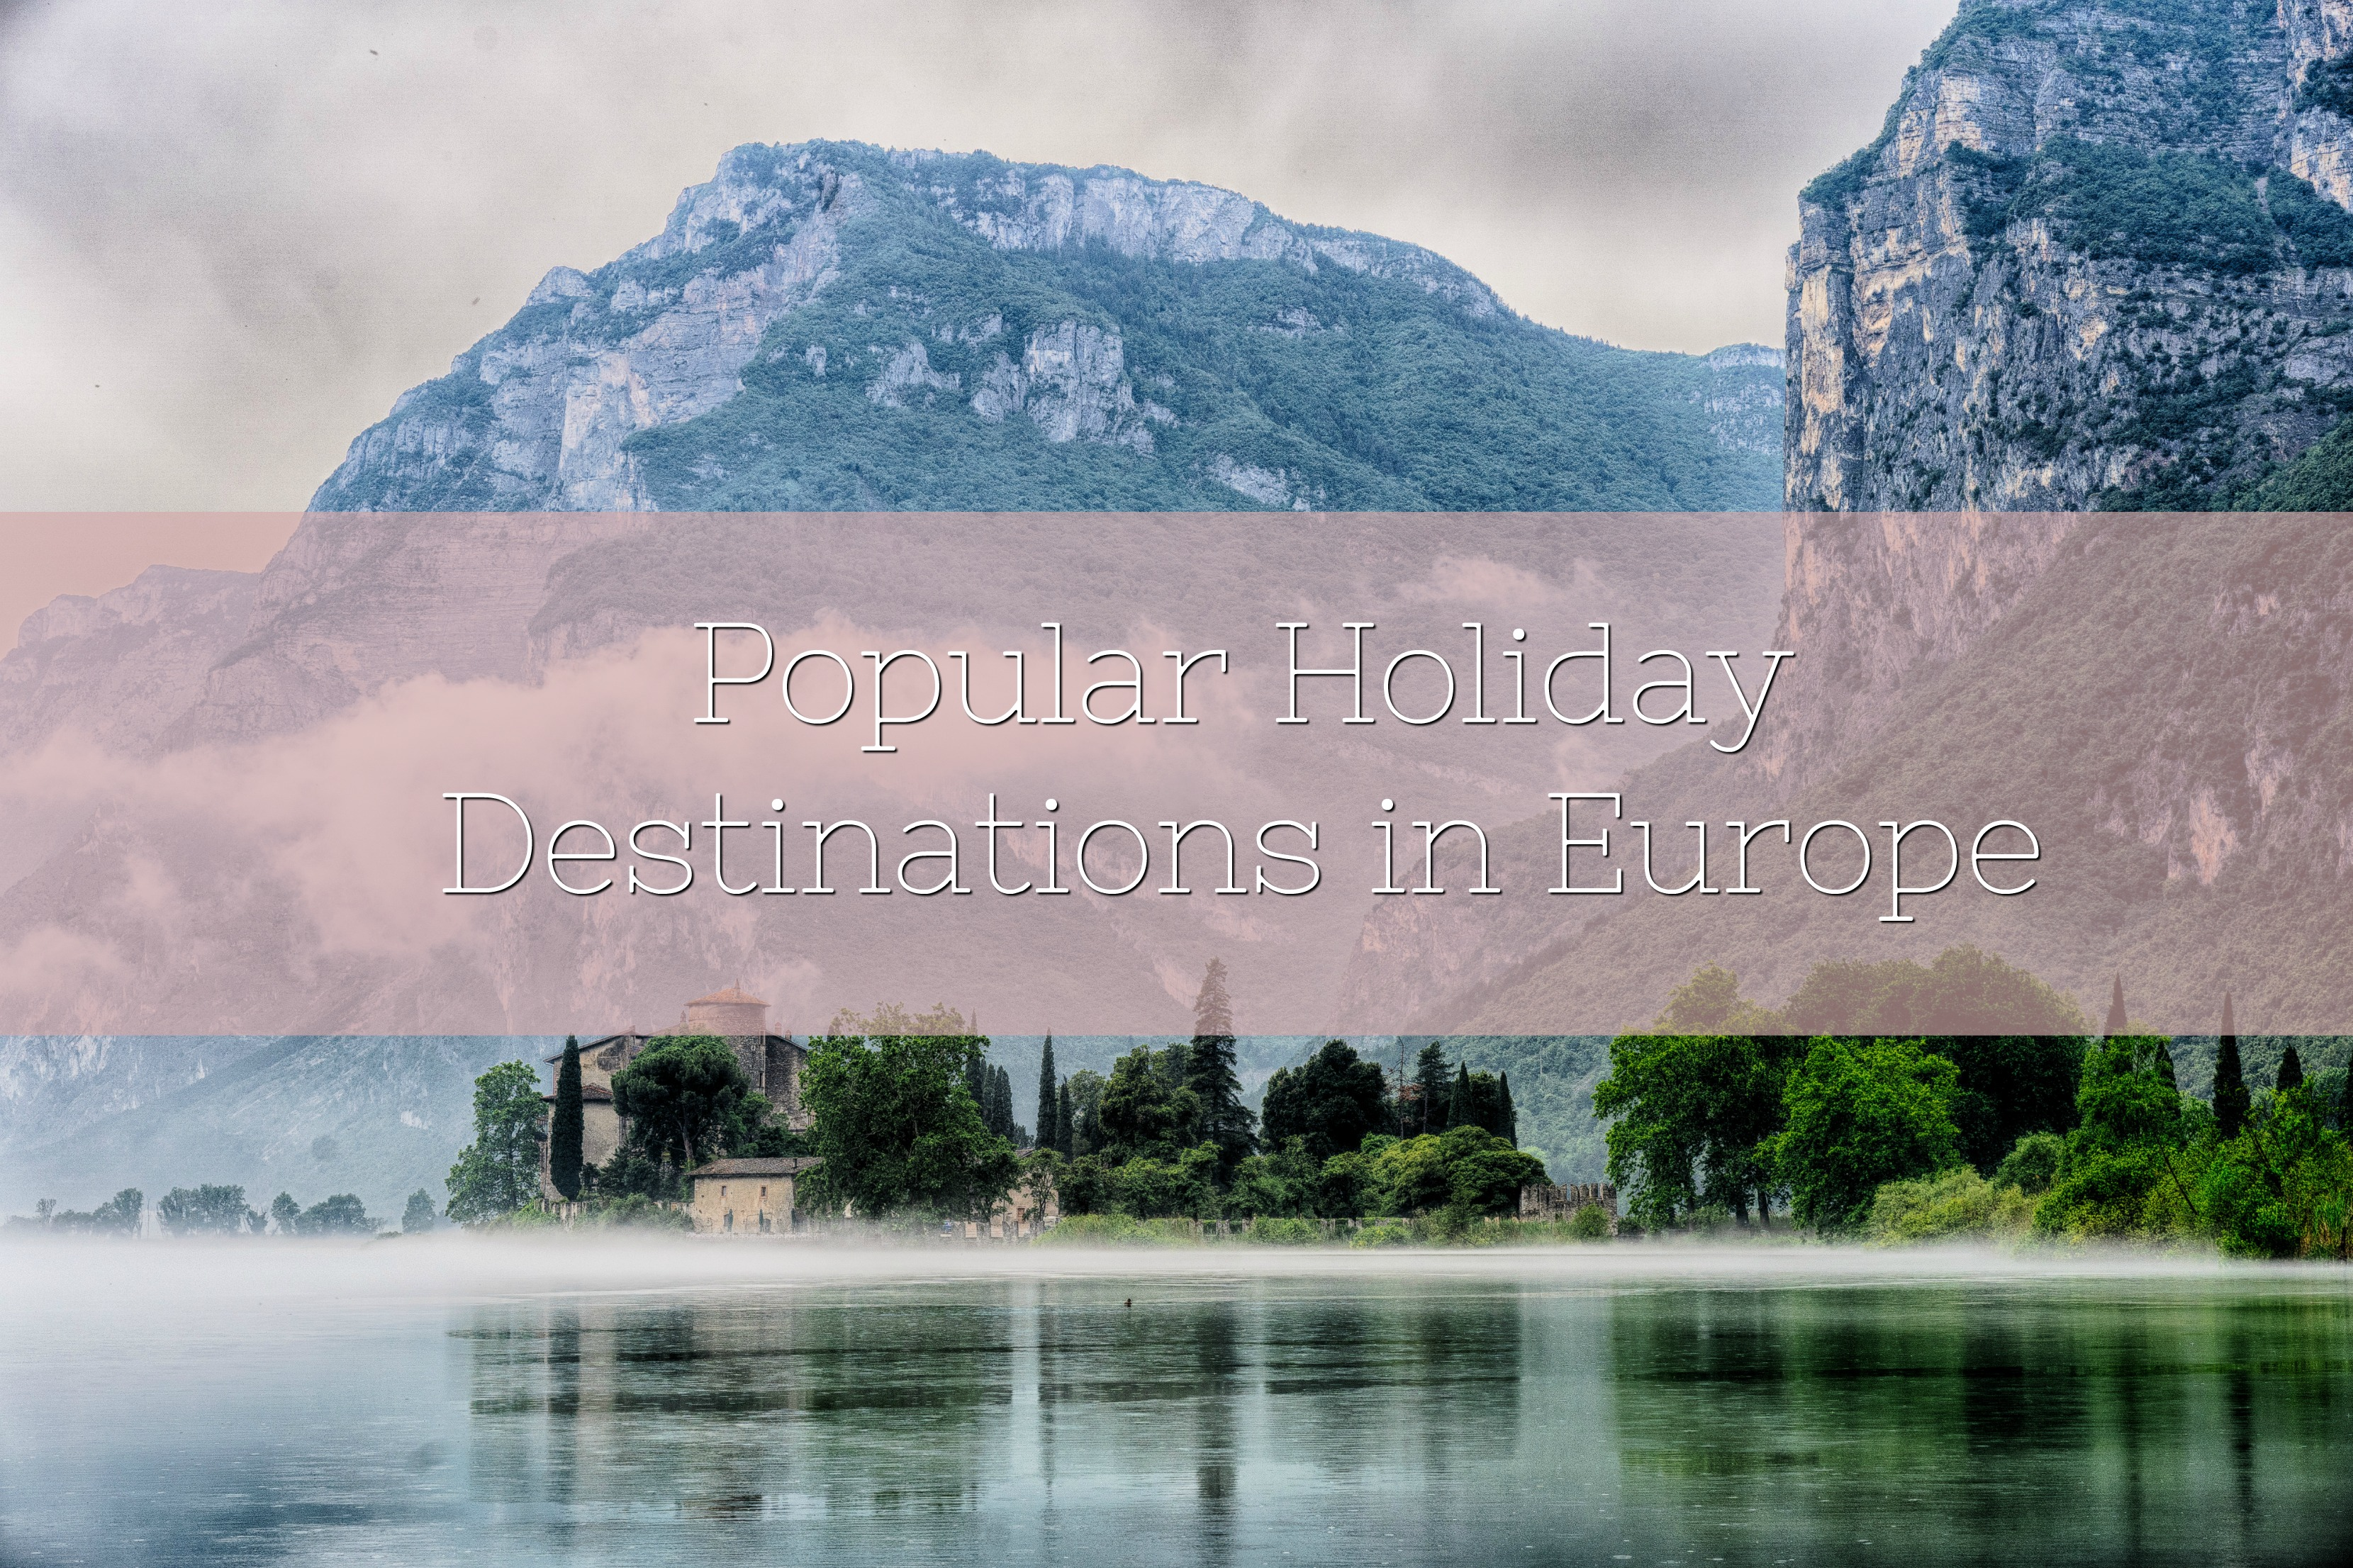 Popular Holiday Destinations in Europe